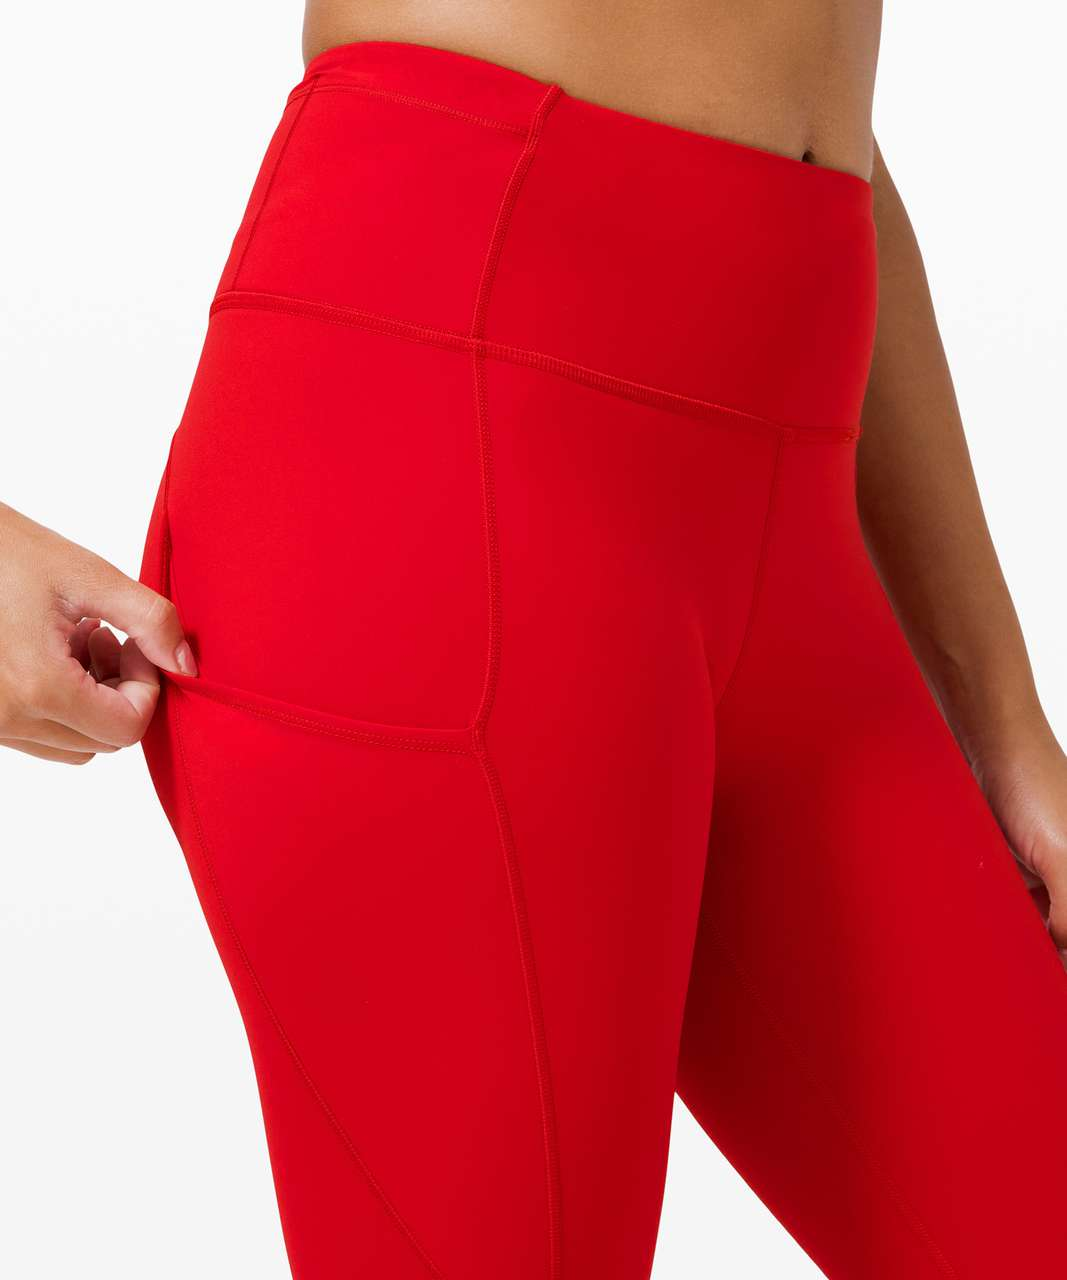 "Lululemon Fast and Free High-Rise Tight 28"" *Non-Reflective Brushed Nulux - Dark Red"